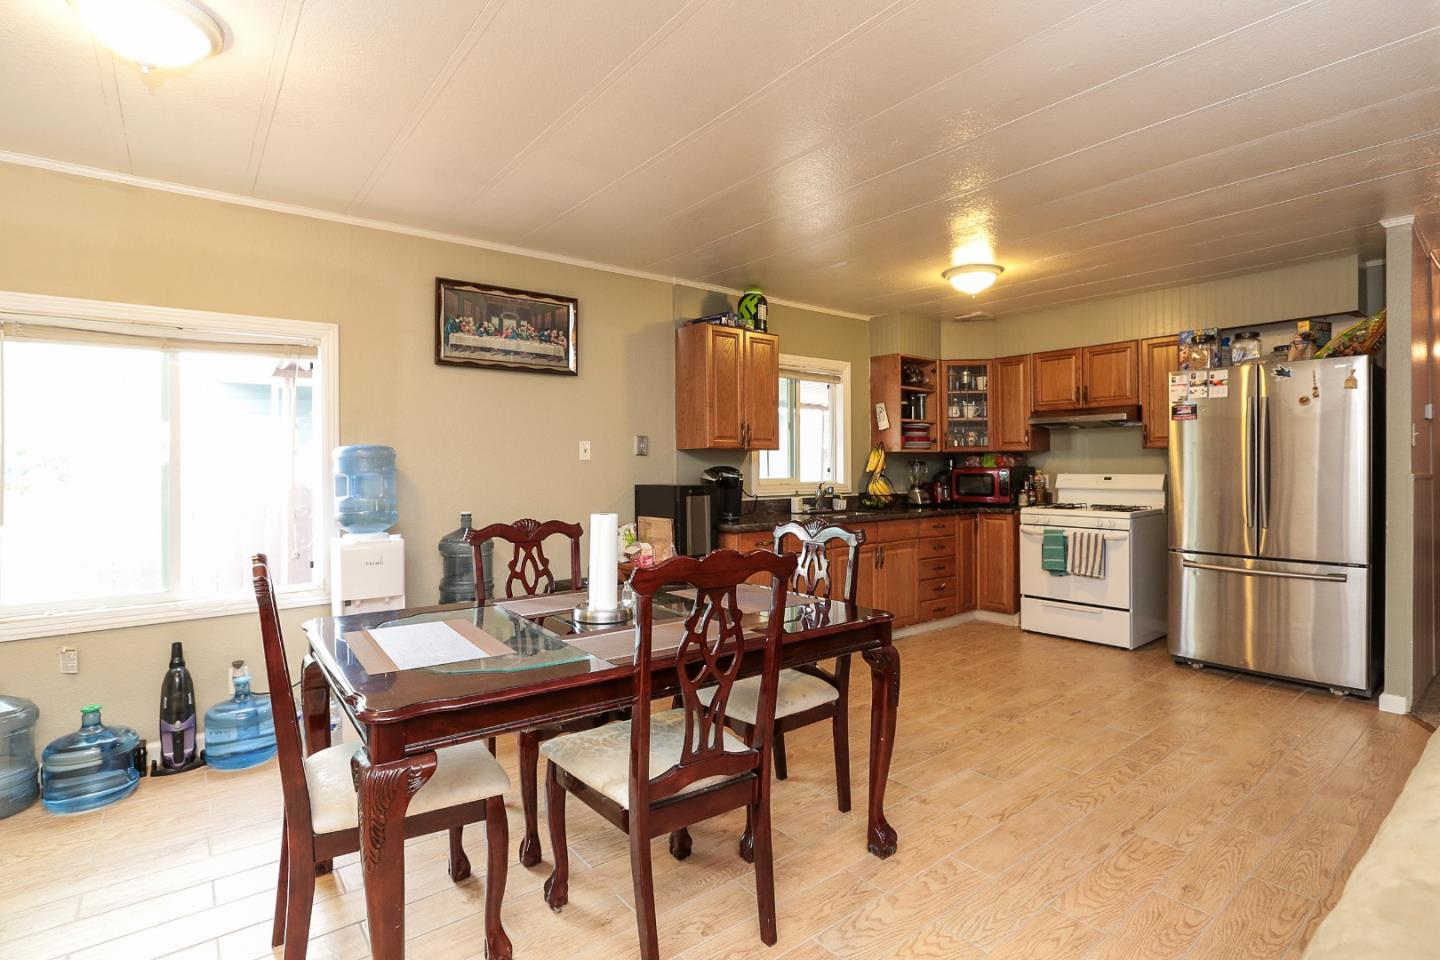 Additional photo for property listing at 200 Ford Road 200 Ford Road San Jose, カリフォルニア 95138 アメリカ合衆国